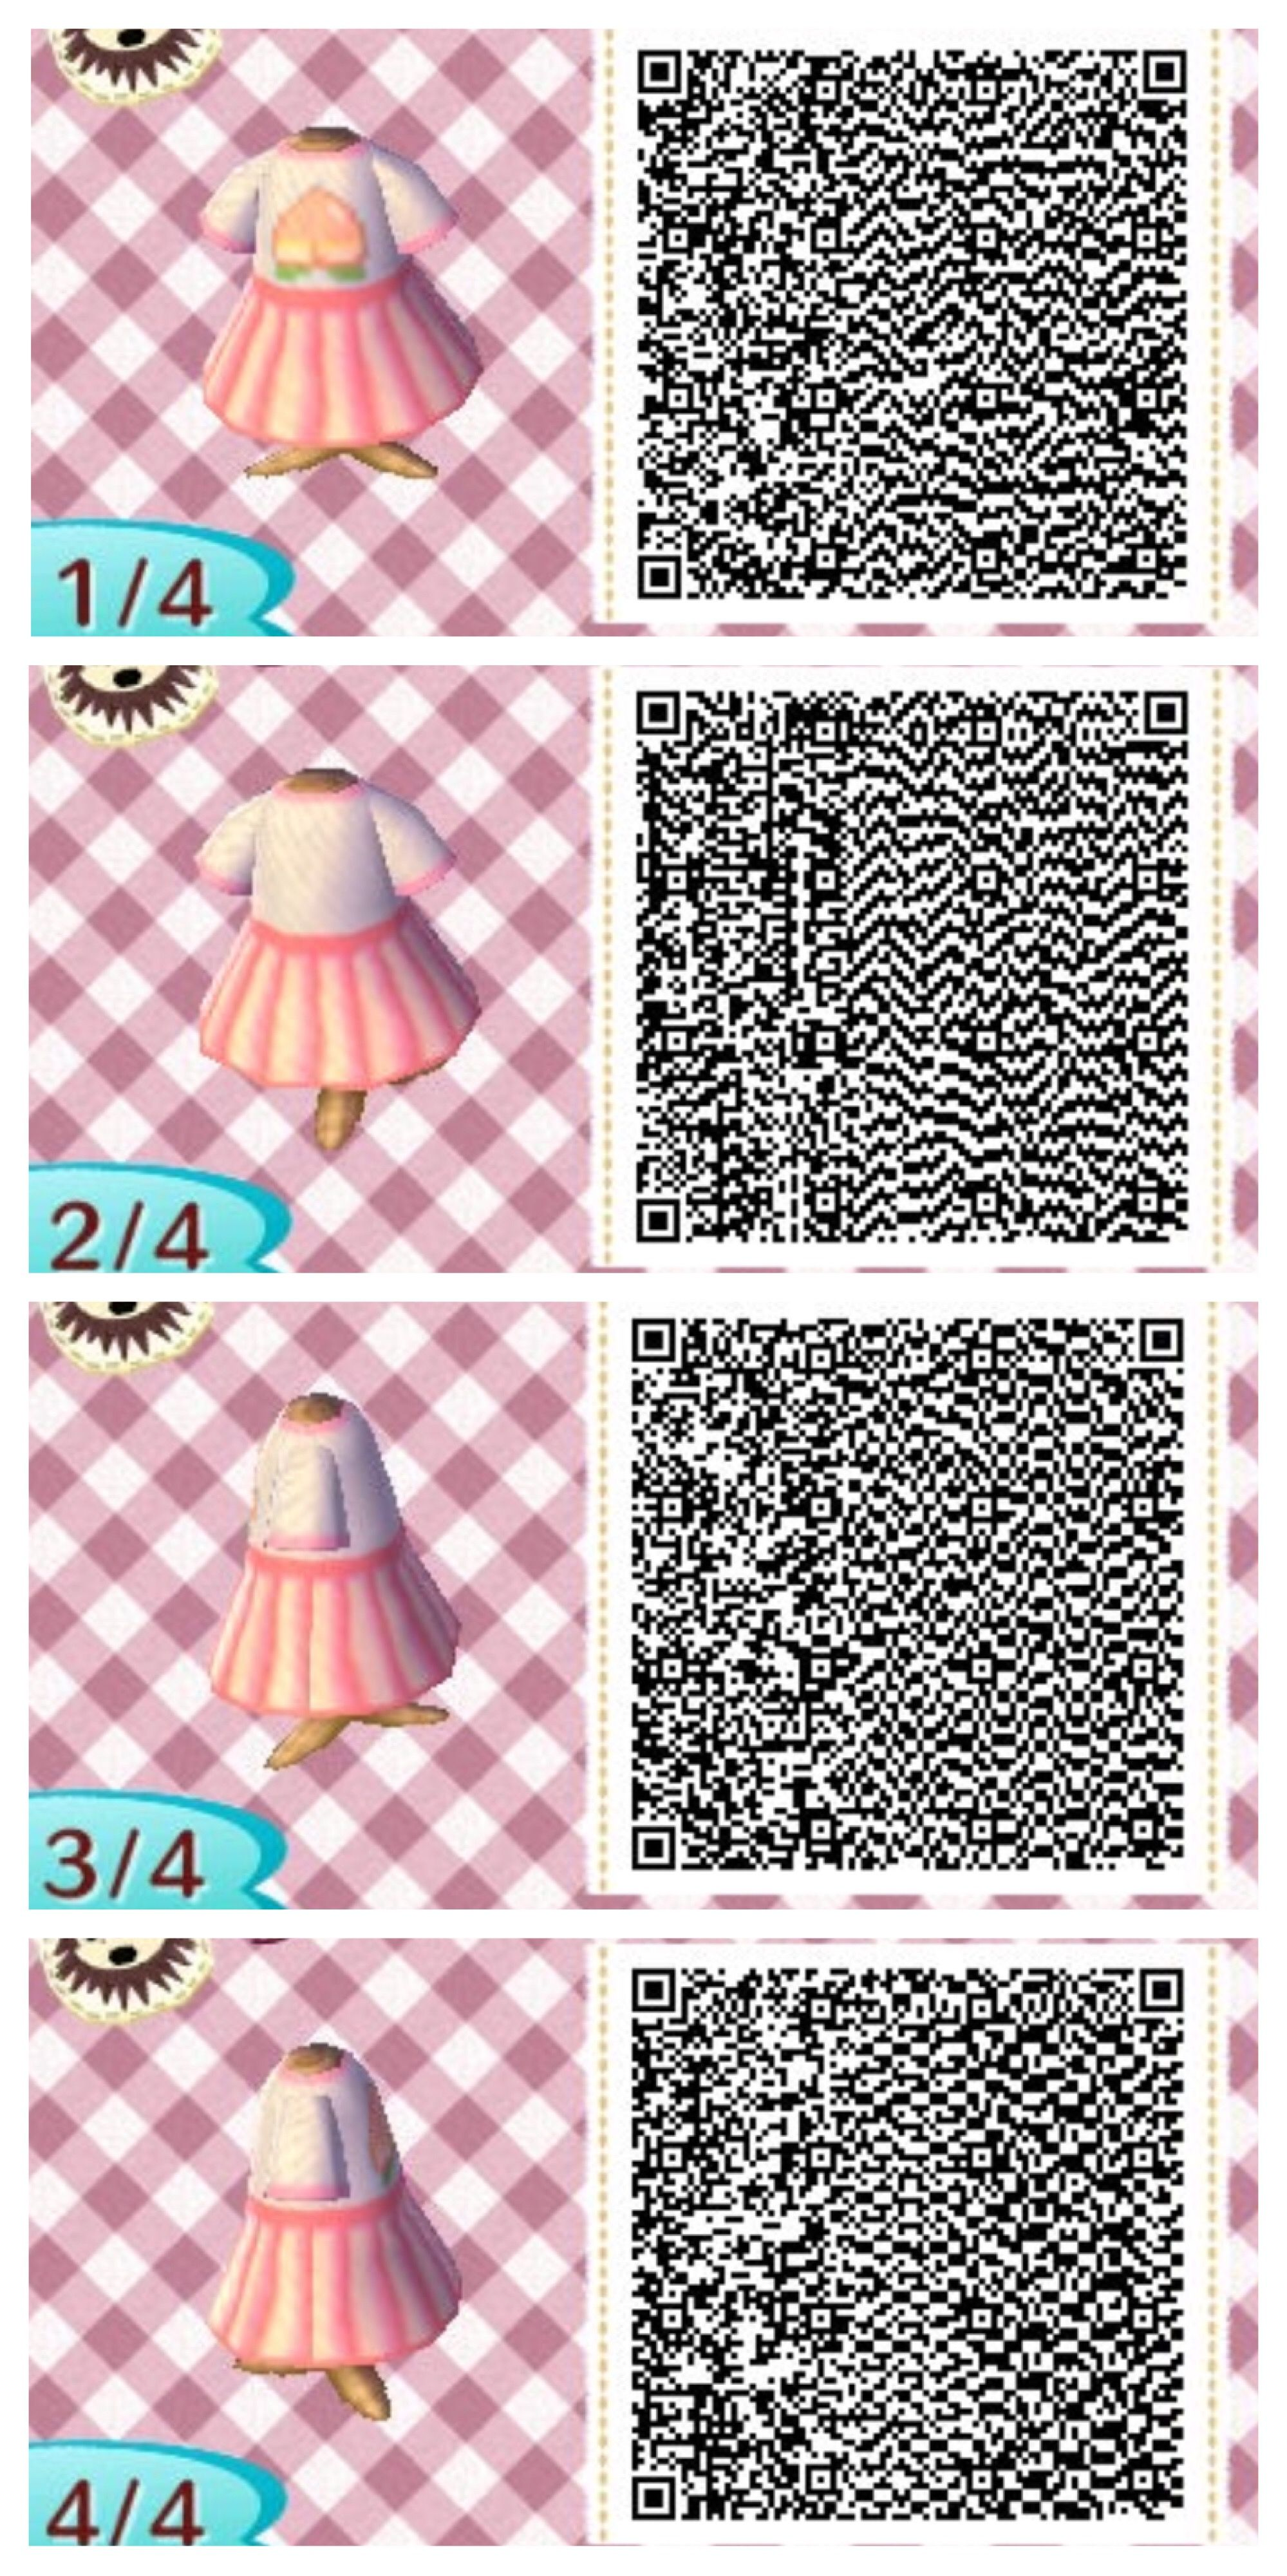 Pin by Kristen Tedrow on ACNL QR codes   Animal crossing